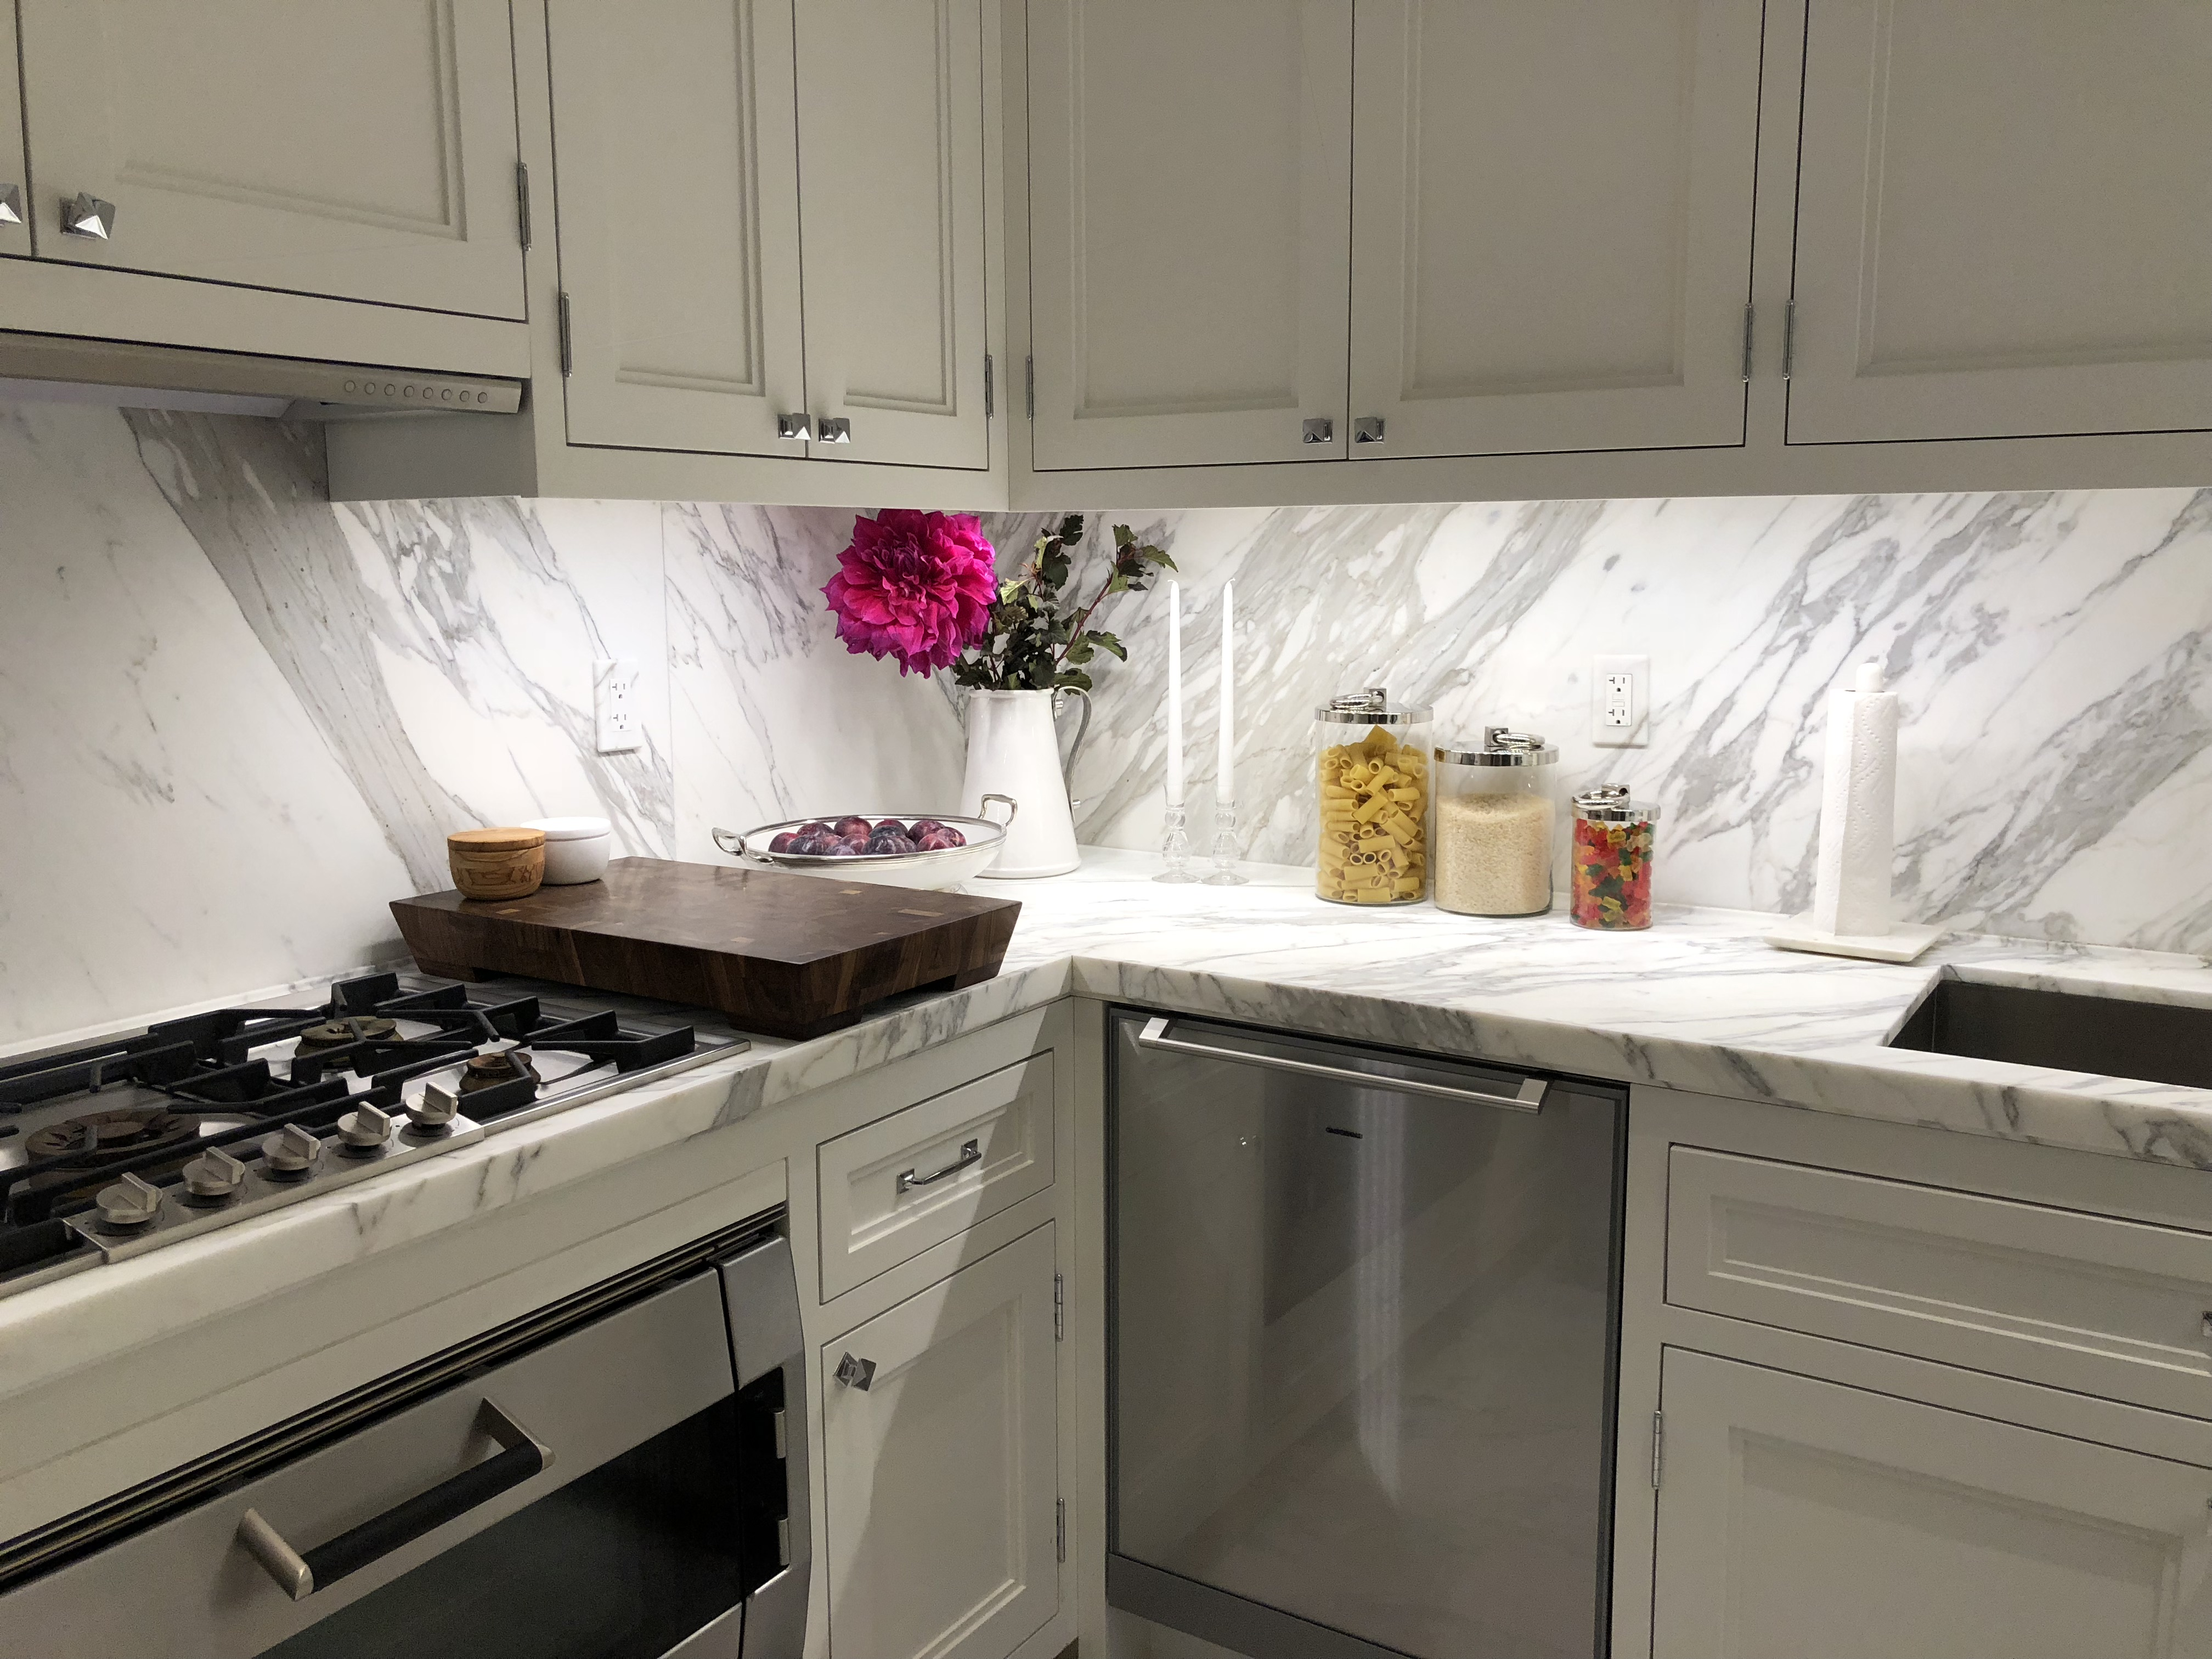 flowers-in-kitchen-by-liz-caan-interior-design-TOWN-Fast-and-Luxurious